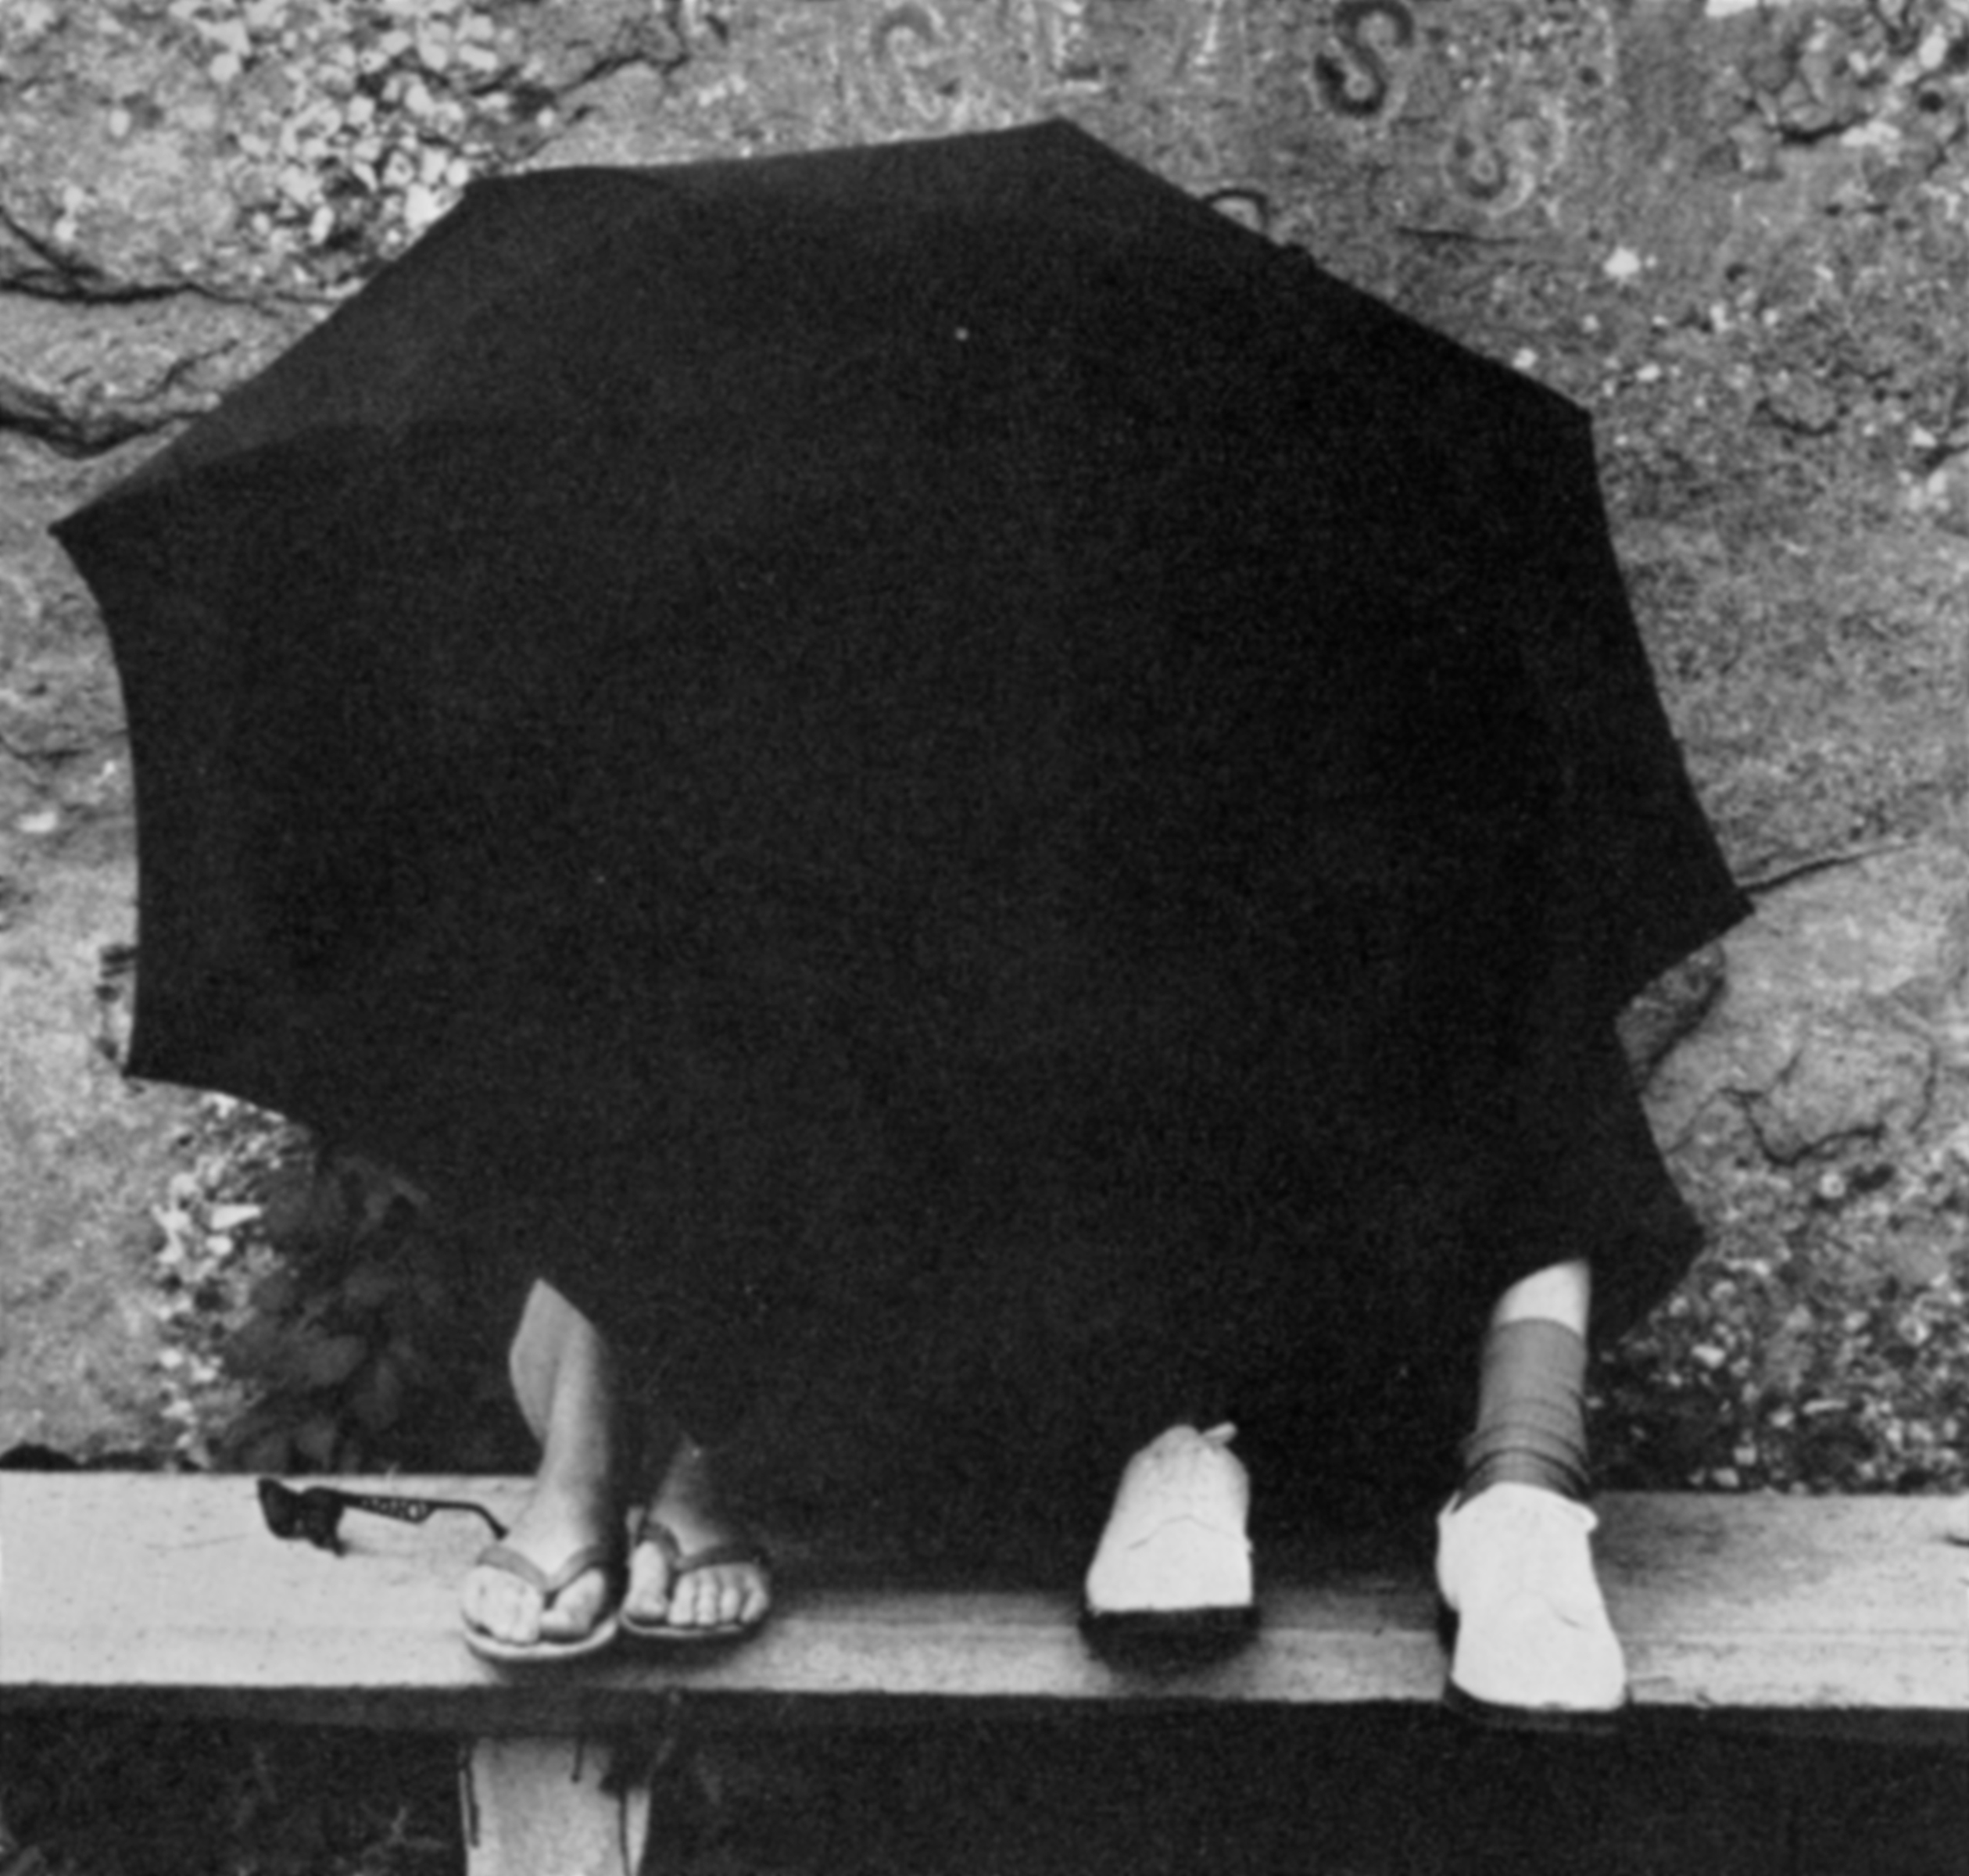 Students Hiding behind Umbrella in front of the Rock, circa 1962